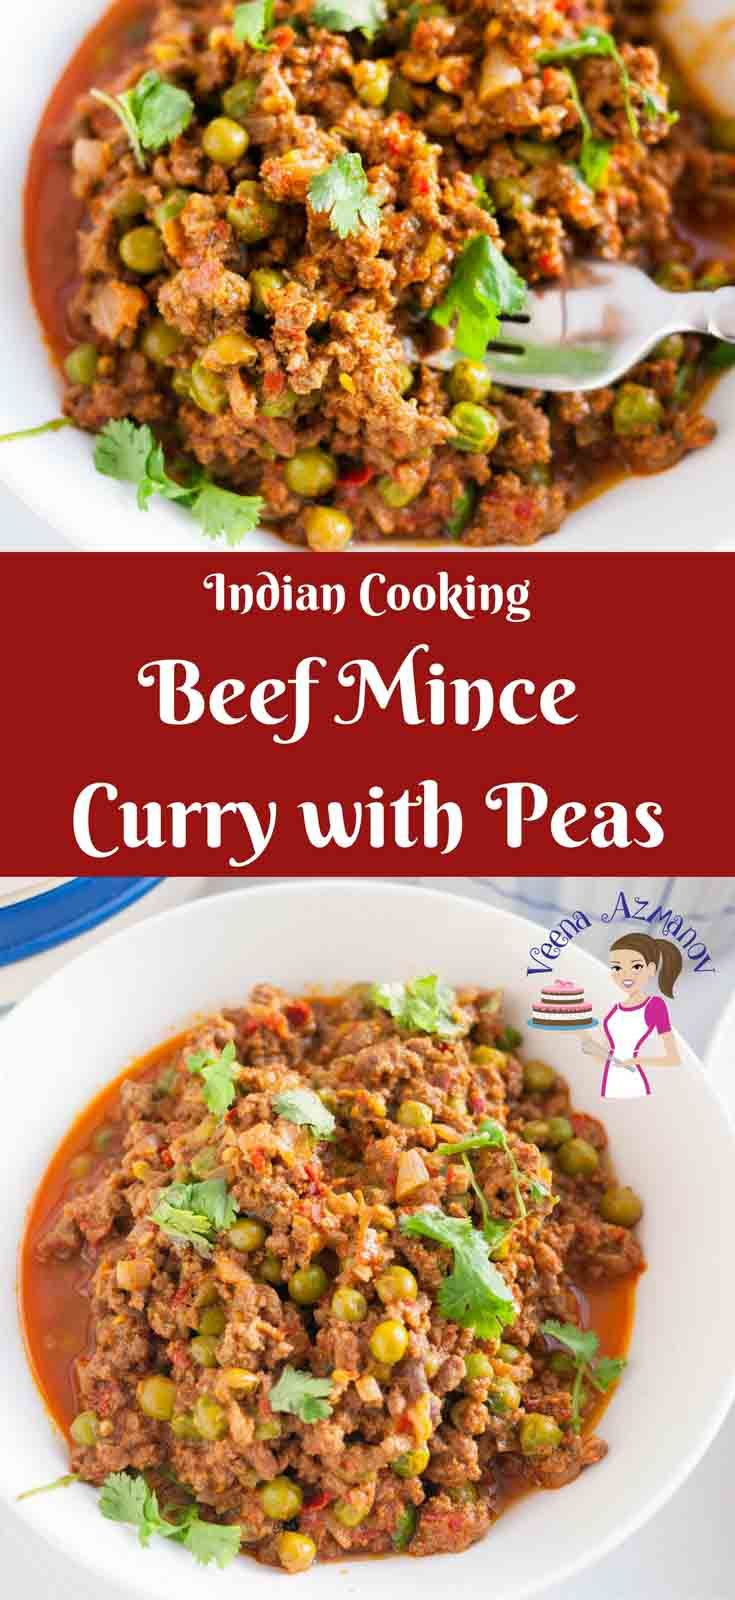 This Beef Mince Curry Is An Indian Classic Made With Peas Very Similar To A Chili With Mince Meat And Beans But Minced Meat Recipe Minced Beef Recipes Recipes